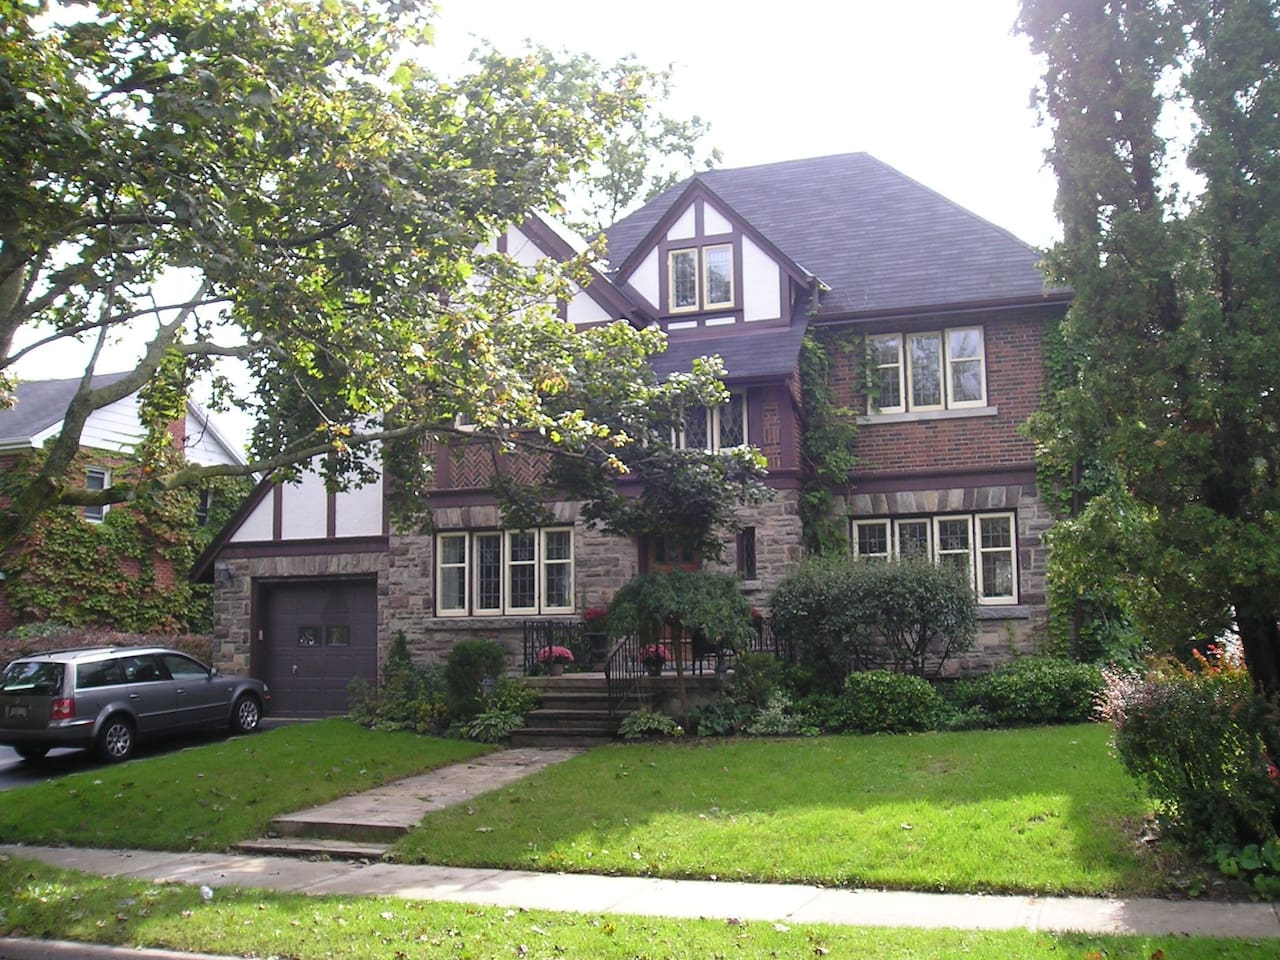 Home For Rent in Westmount, minutes from Uptown Waterloo